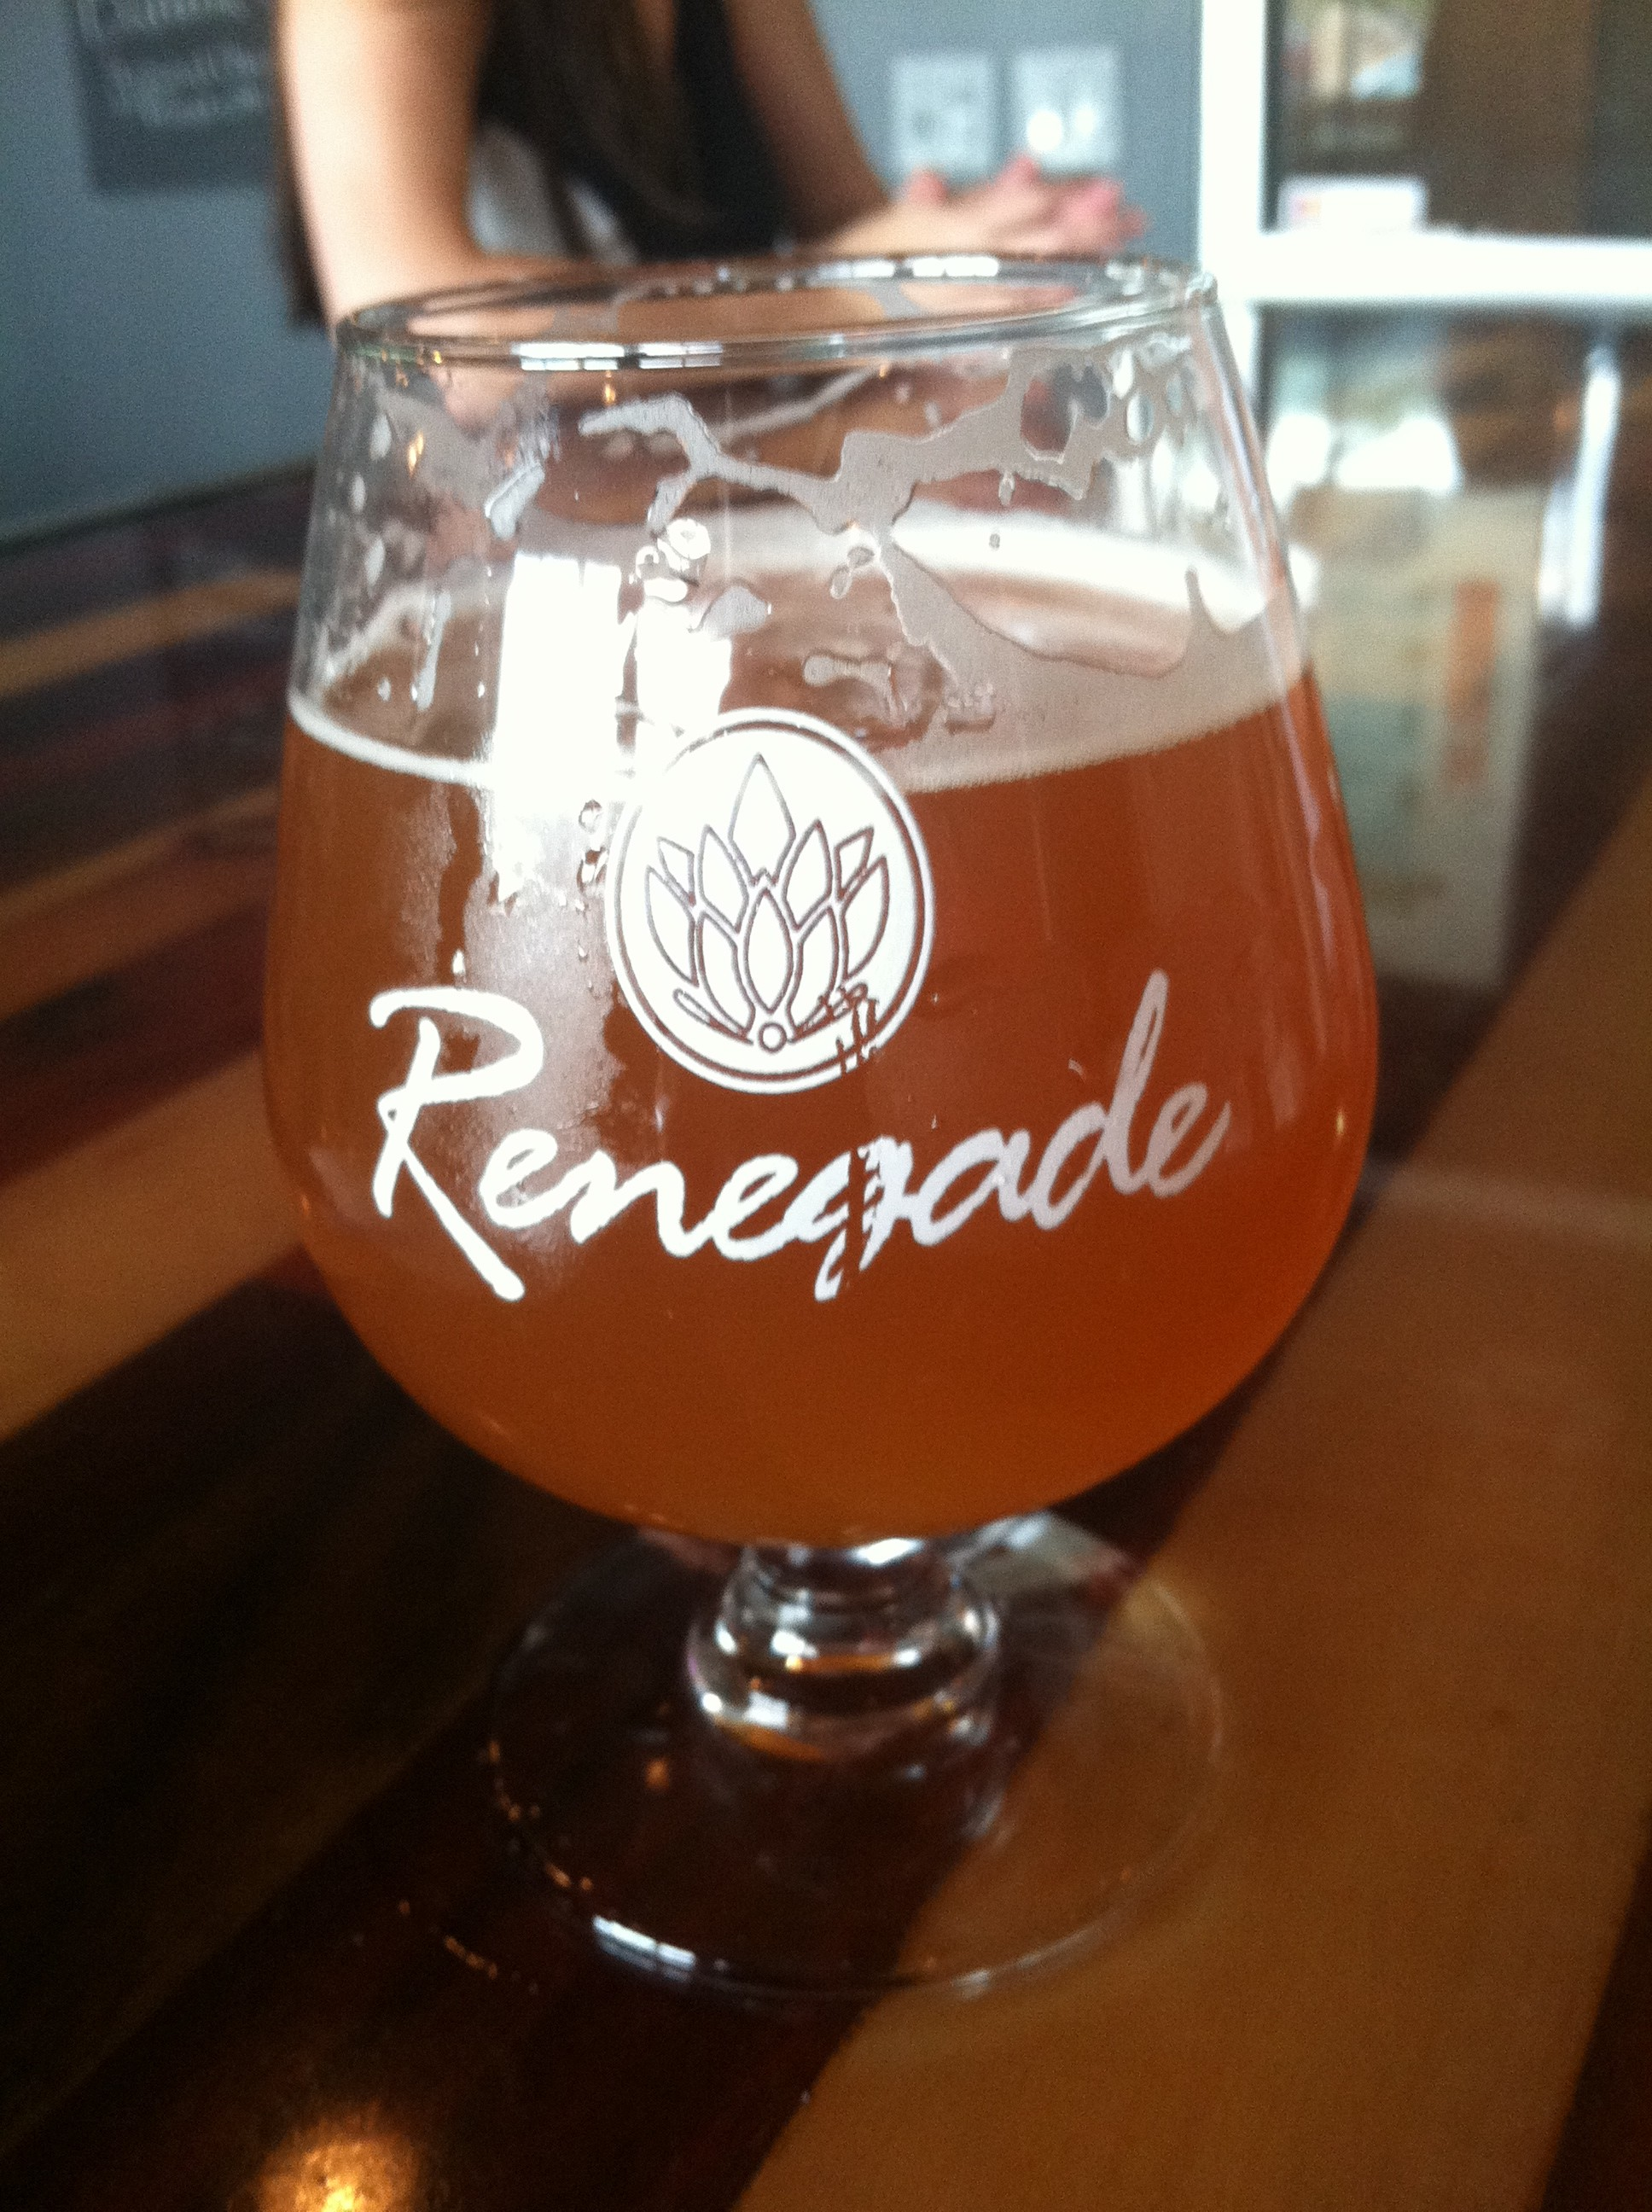 Renegade Brewery, I like this spot